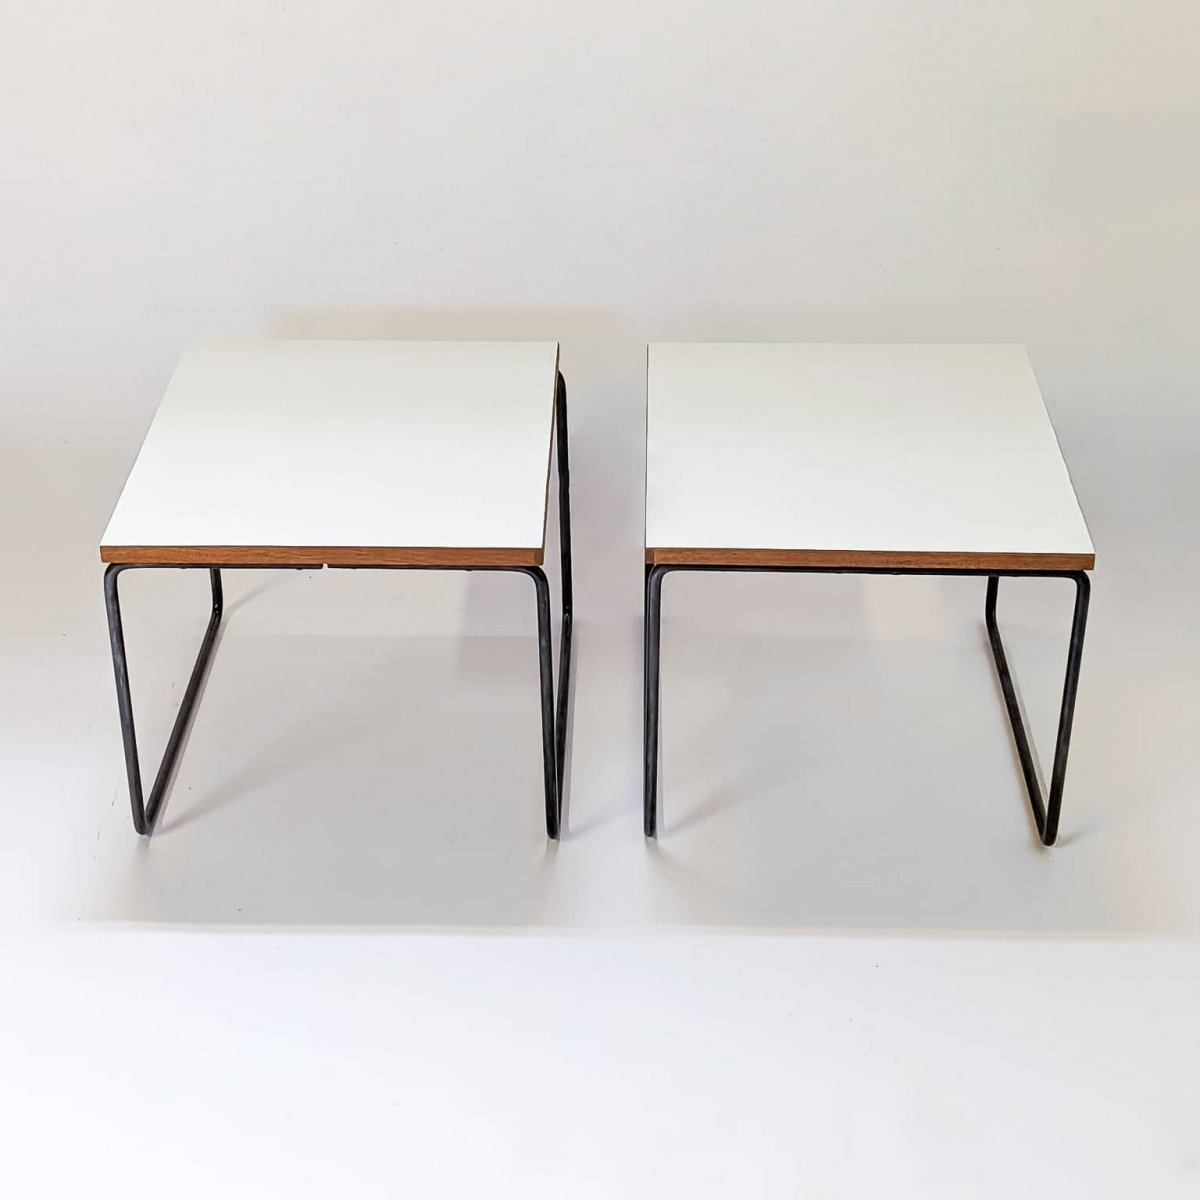 Duo Of Tables By Pierre Guariche, Steiner Edition 1955-photo-3